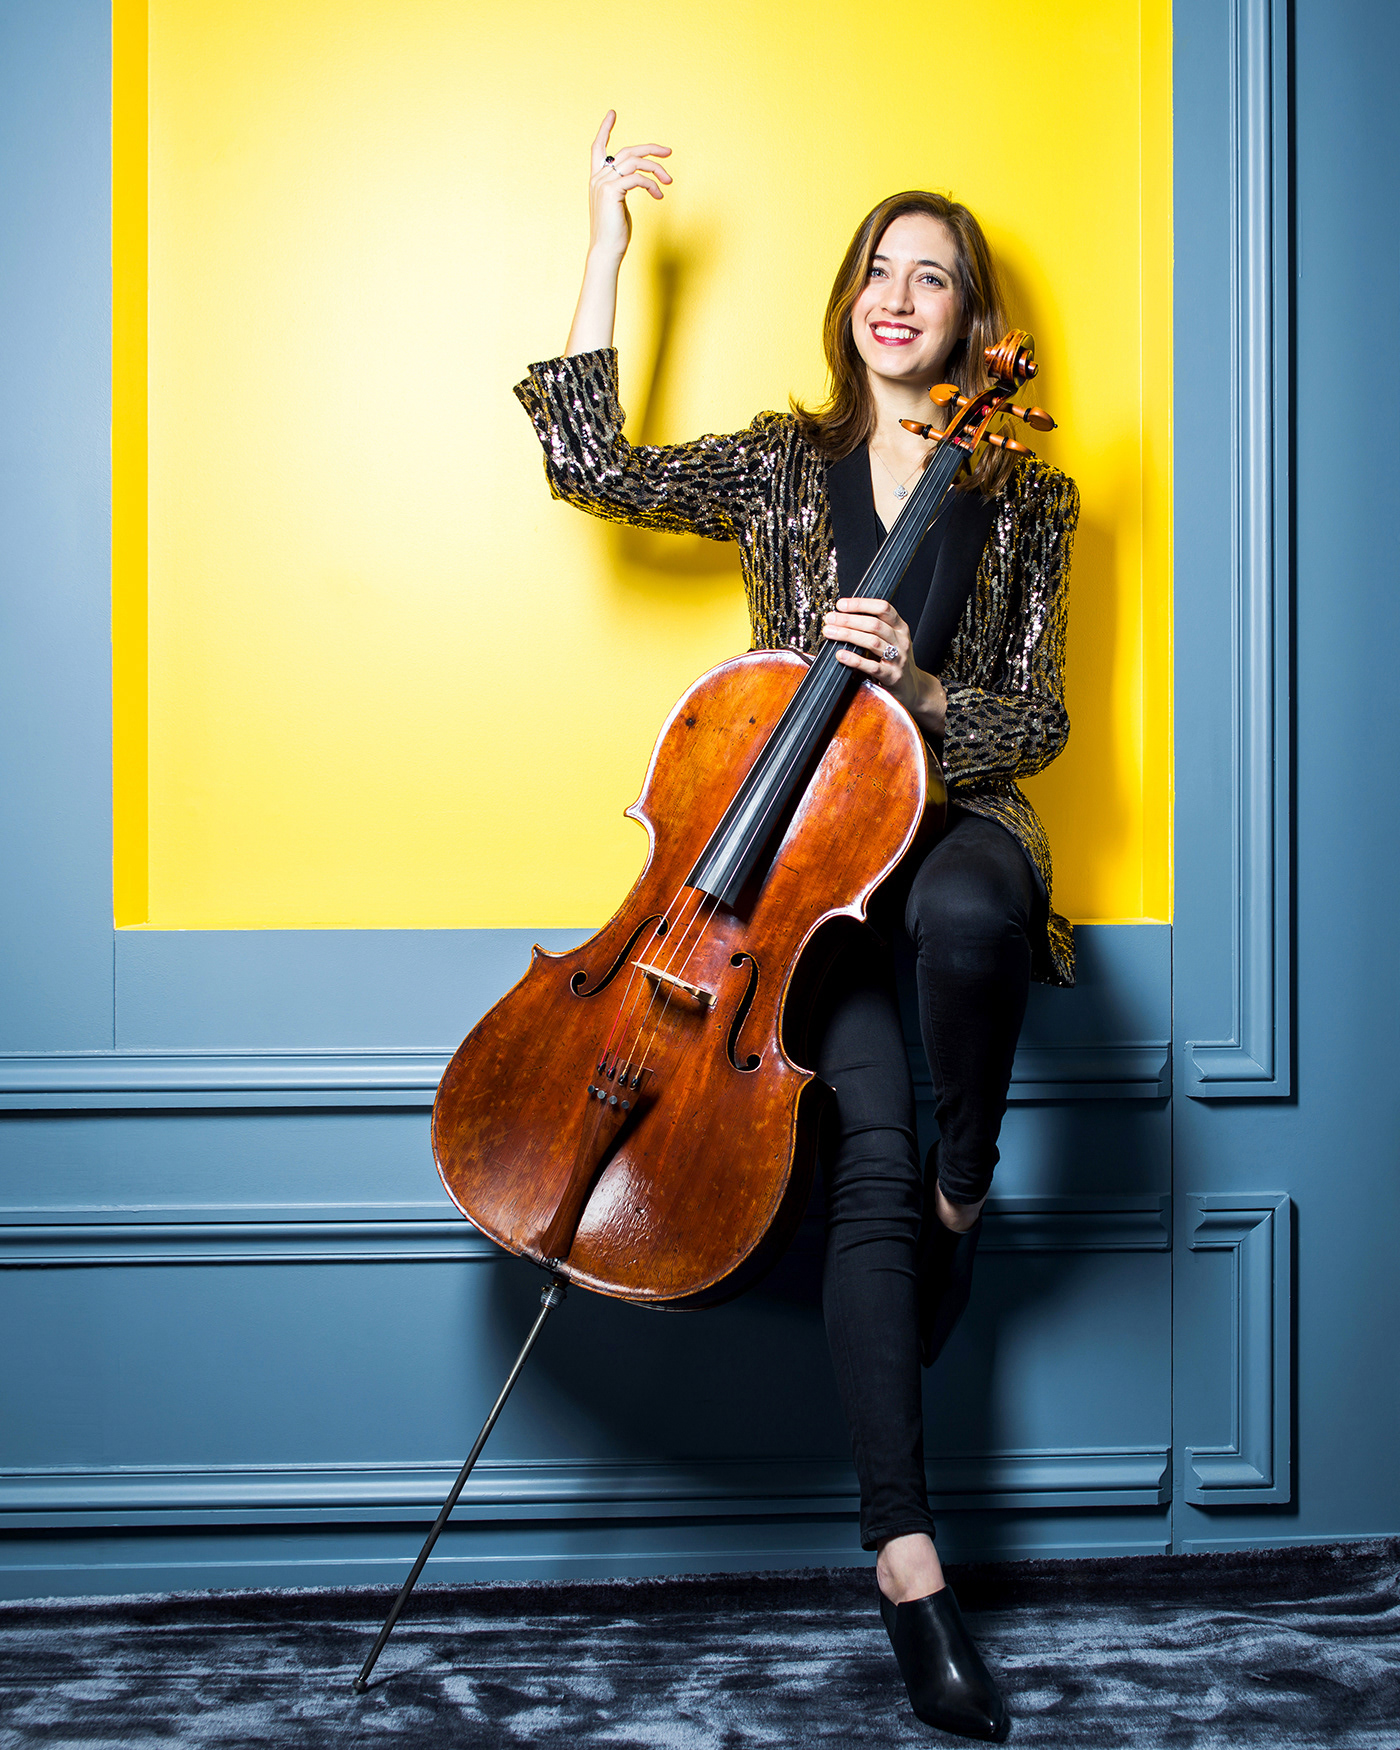 Image may contain: musical instrument, cello and wall